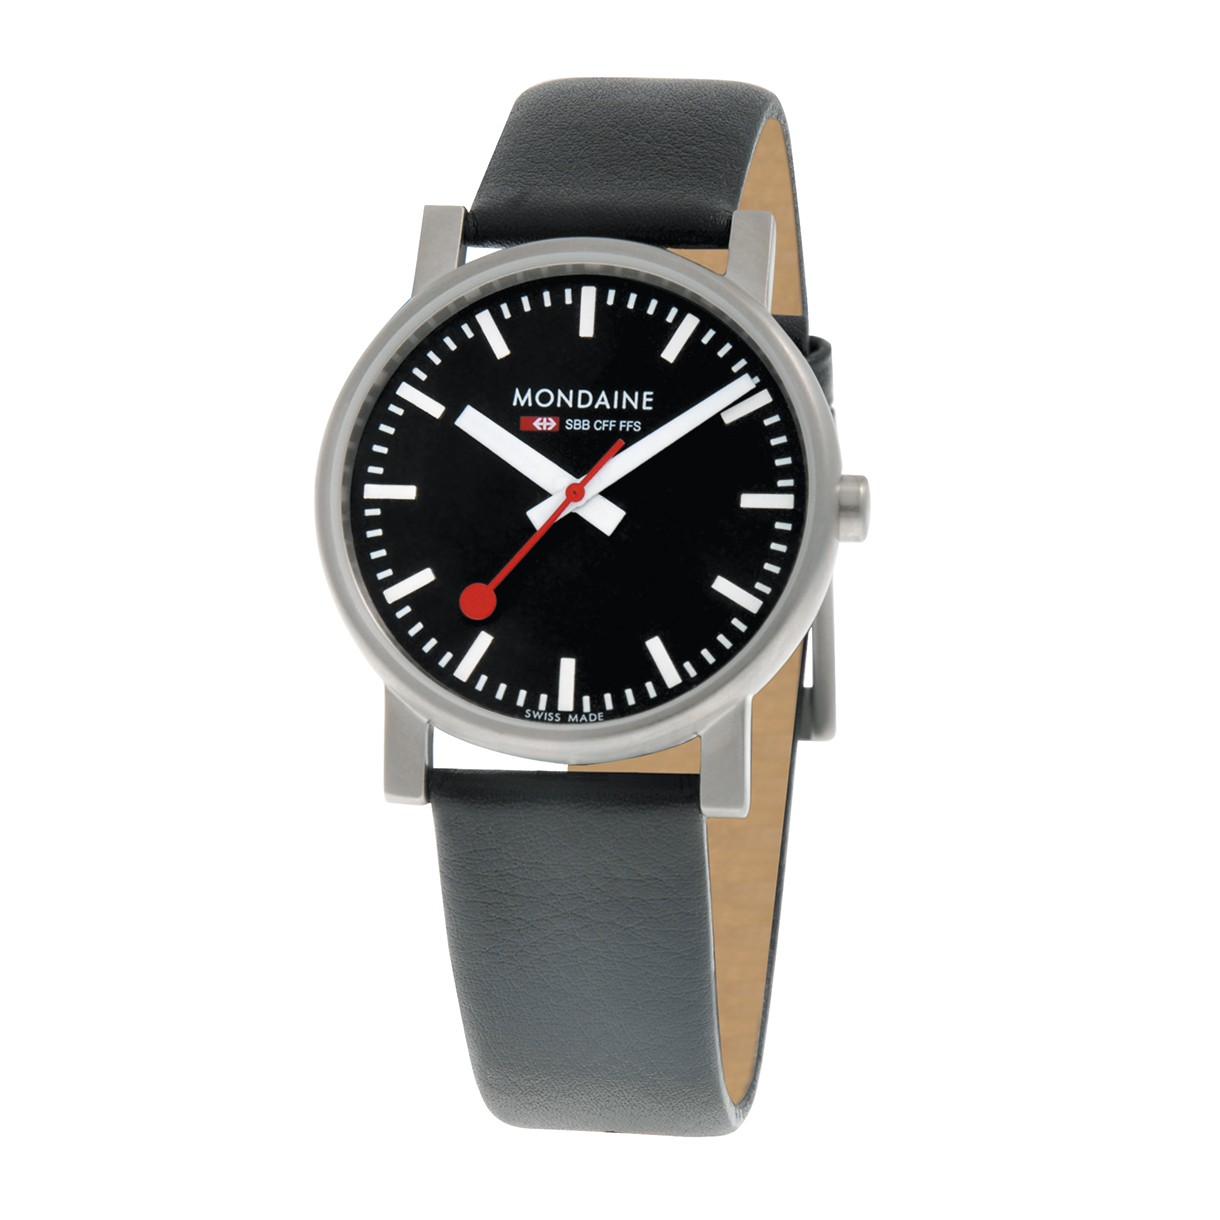 Mondaine swiss watch EVO GENTS - A658.30300.14SBB